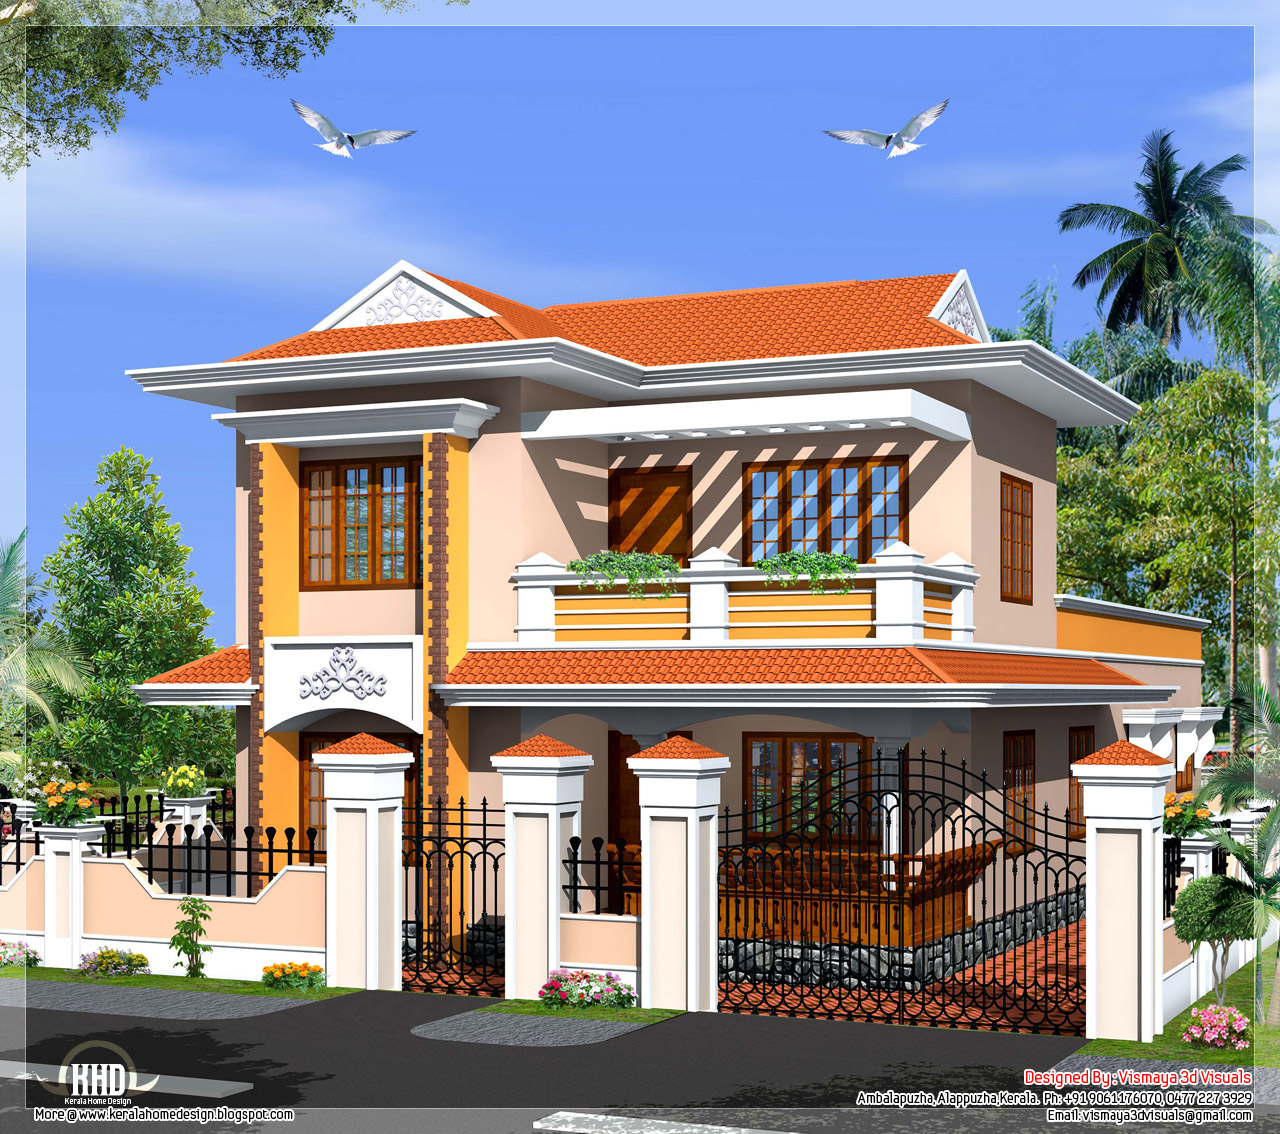 Kerala Model Villa In 2110 In Square Feet Kerala Home: www indian house plan photos